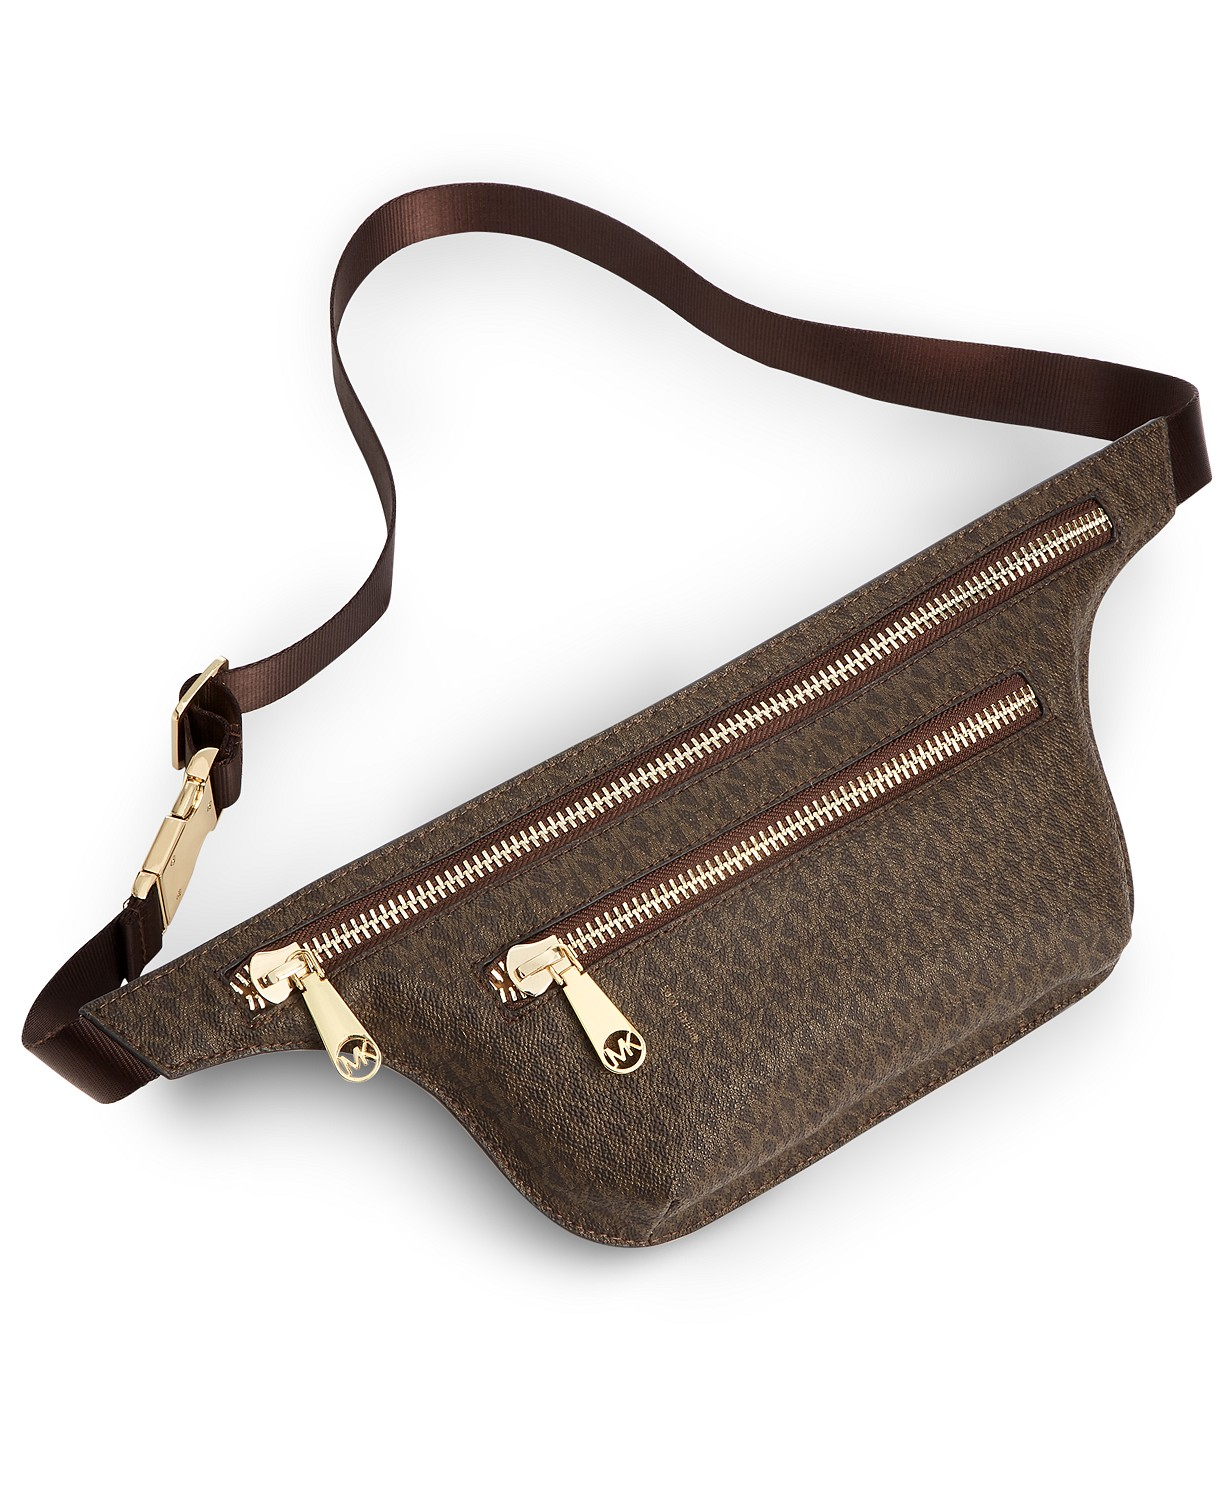 Ledvinka Michael Kors Belt Bag